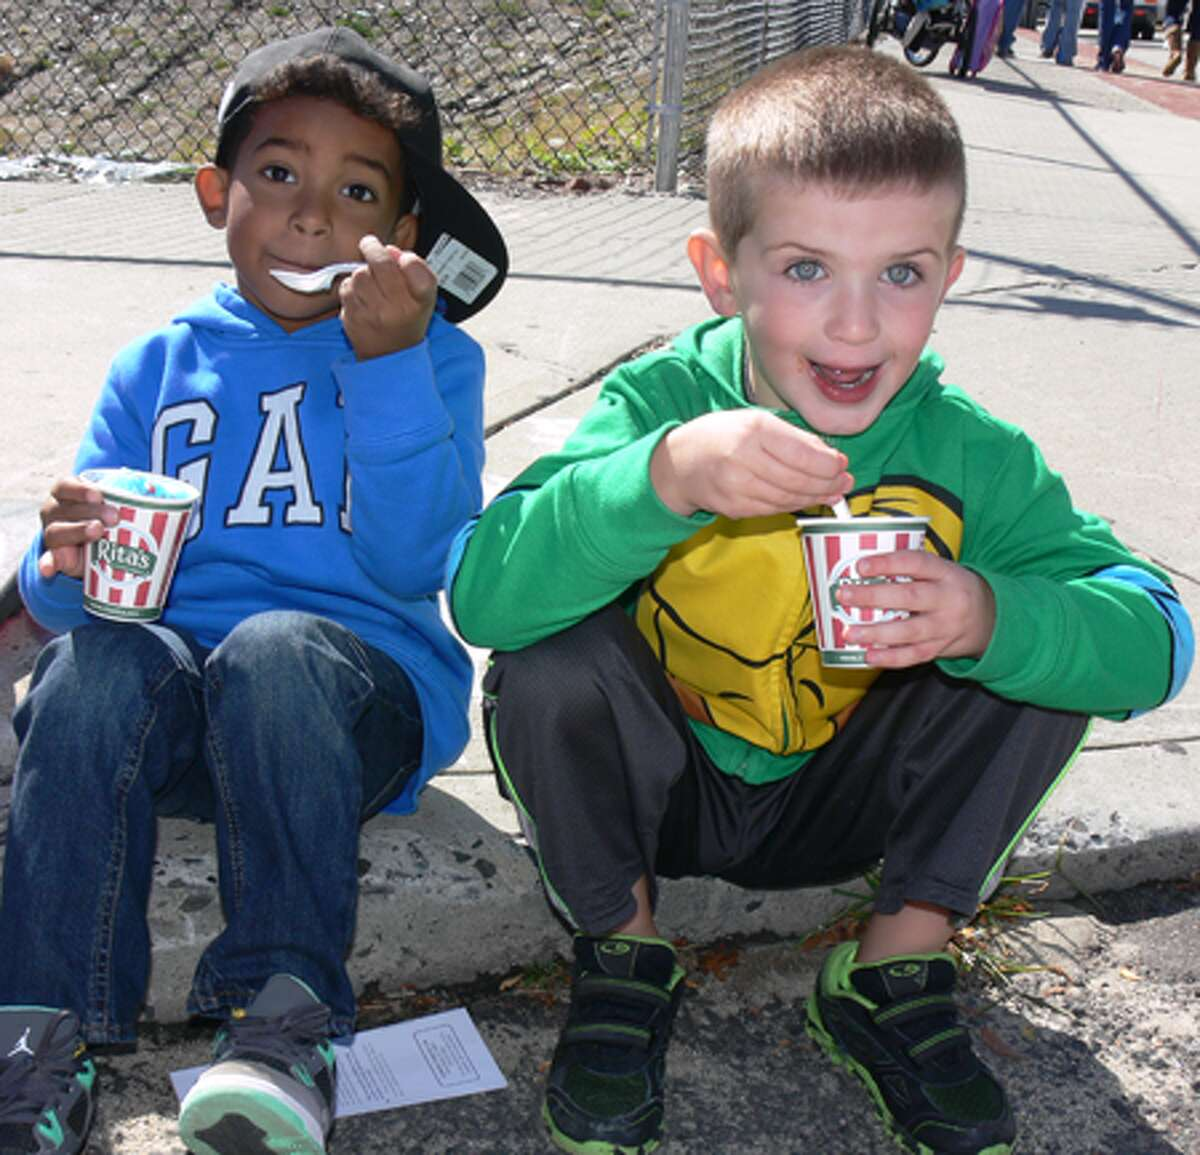 Andre Quick, 4, left, of Derby and A.J. Hatfield, 5, of Shelton eat Italian ice while relaxing on the sidewalk at Shelton Day. The two are friends from pre-school.